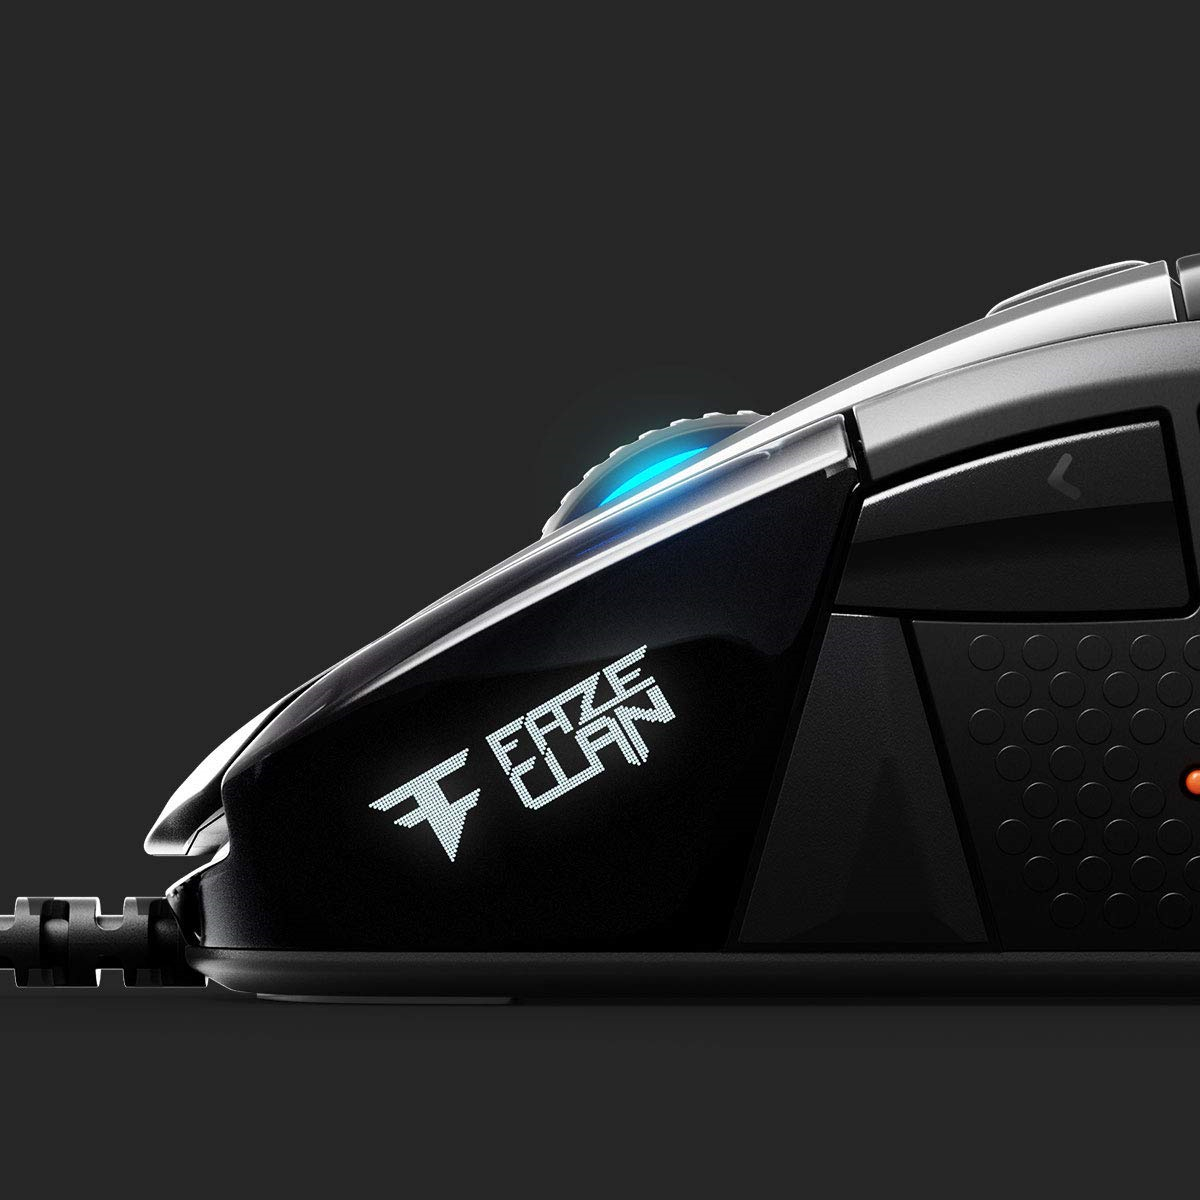 Oled Beleuchtung Steelseries Rival 710 Gaming Maus 16 000 Cpi Truemove3 Optical Sensor Oled Display Haptisches Feedback Rgb Beleuchtung